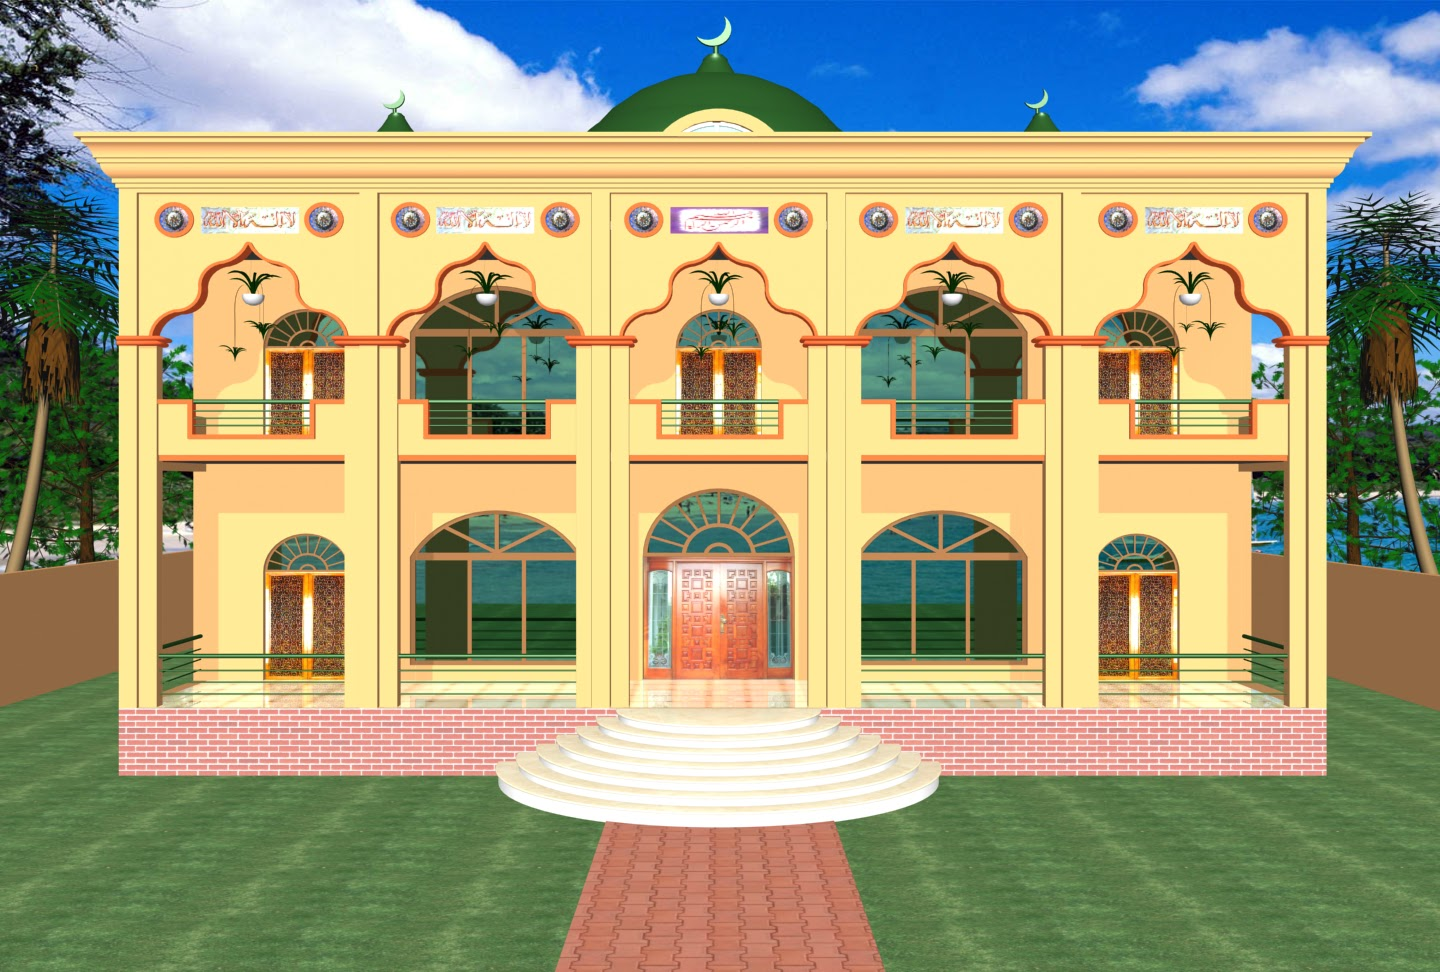 Home arcitect mosque design - 3d home architect design deluxe 8 tutorial ...